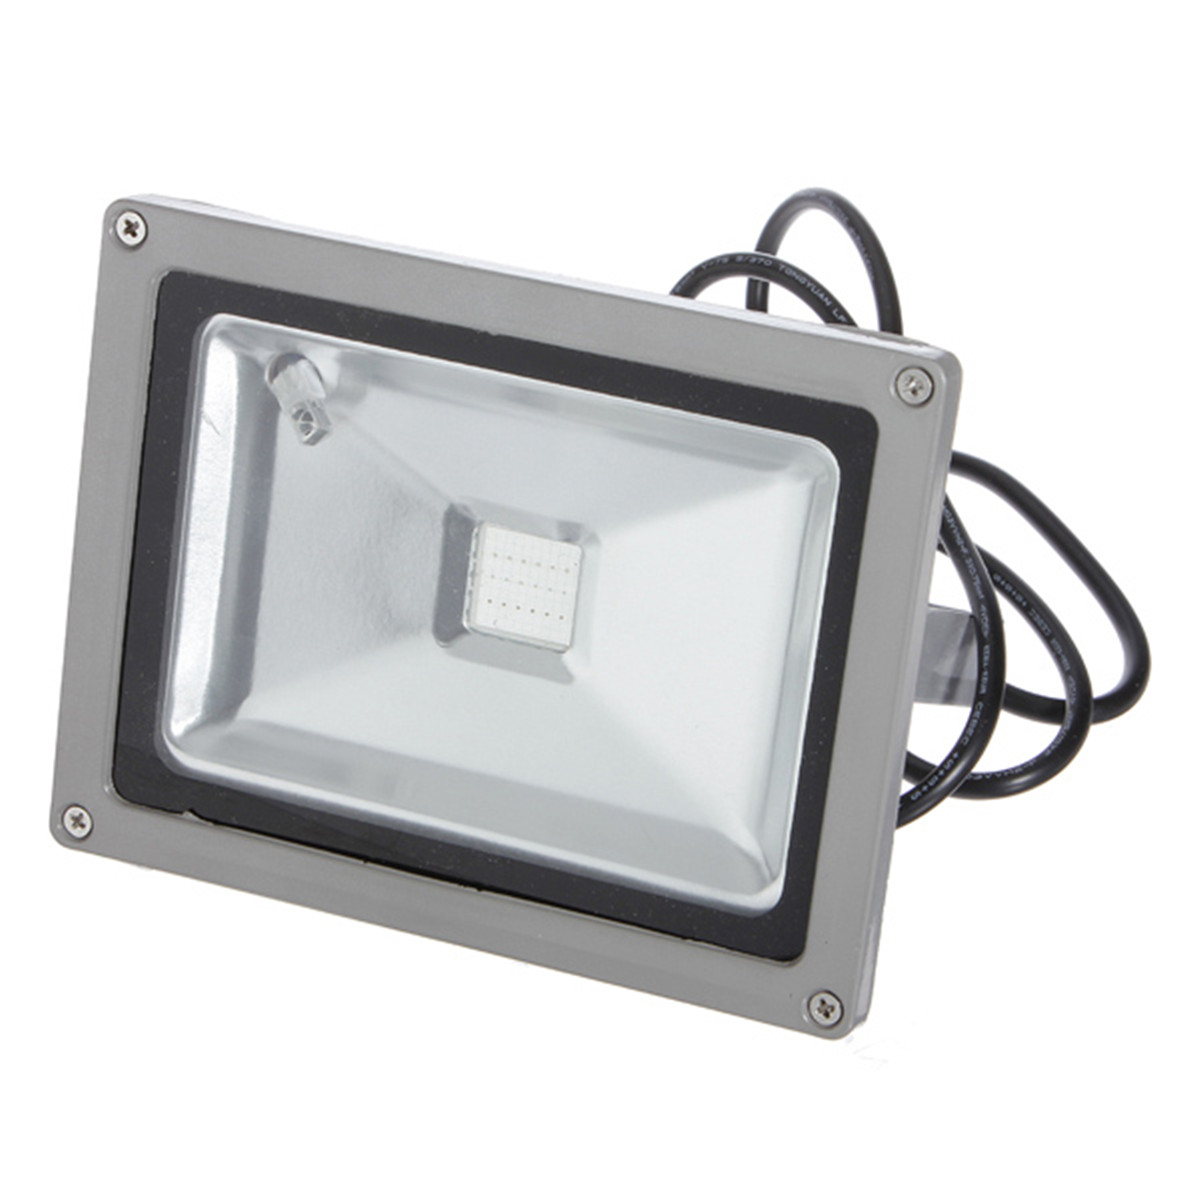 20w led lampe projecteur rgb exterieur lumiere ip65 for Lampe a led exterieur